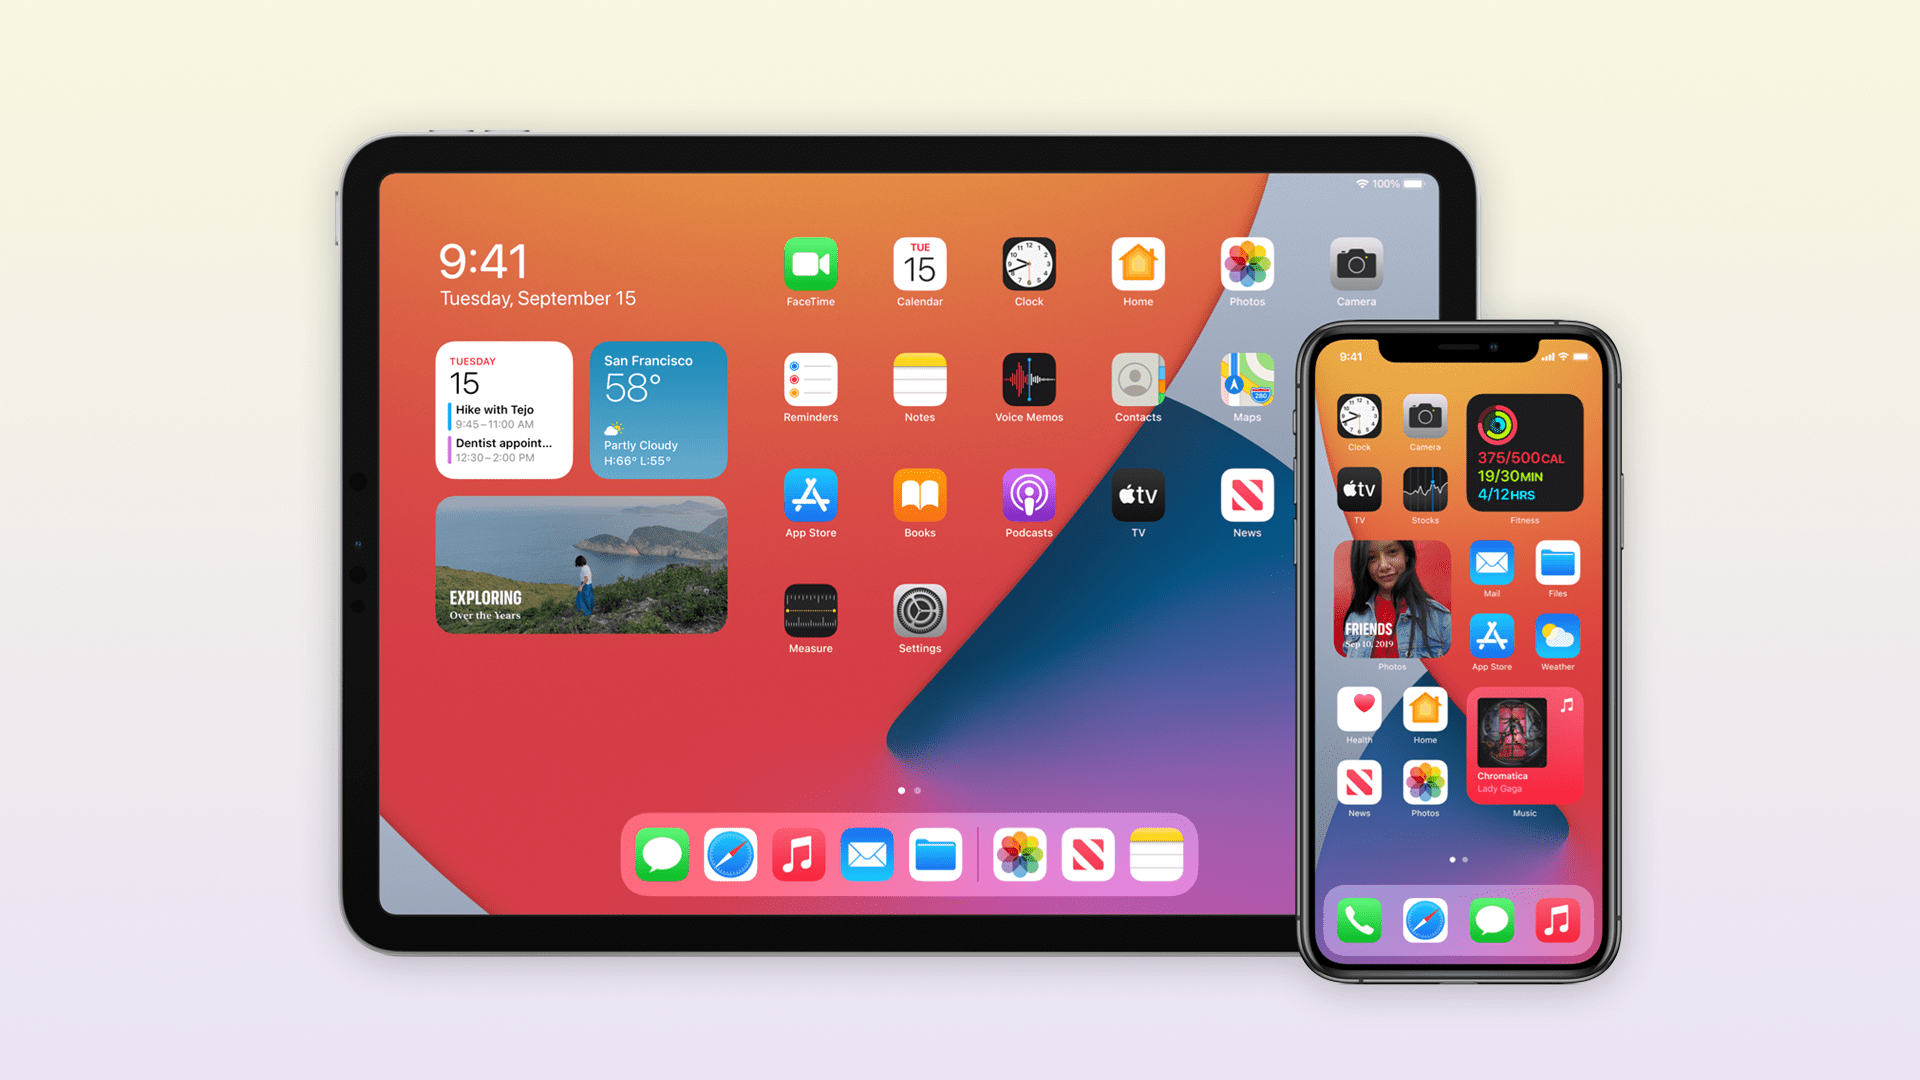 ❤ Apple stops signing iOS 14.2 and iOS 14.2.1, blocking downgrades from iOS 14.3